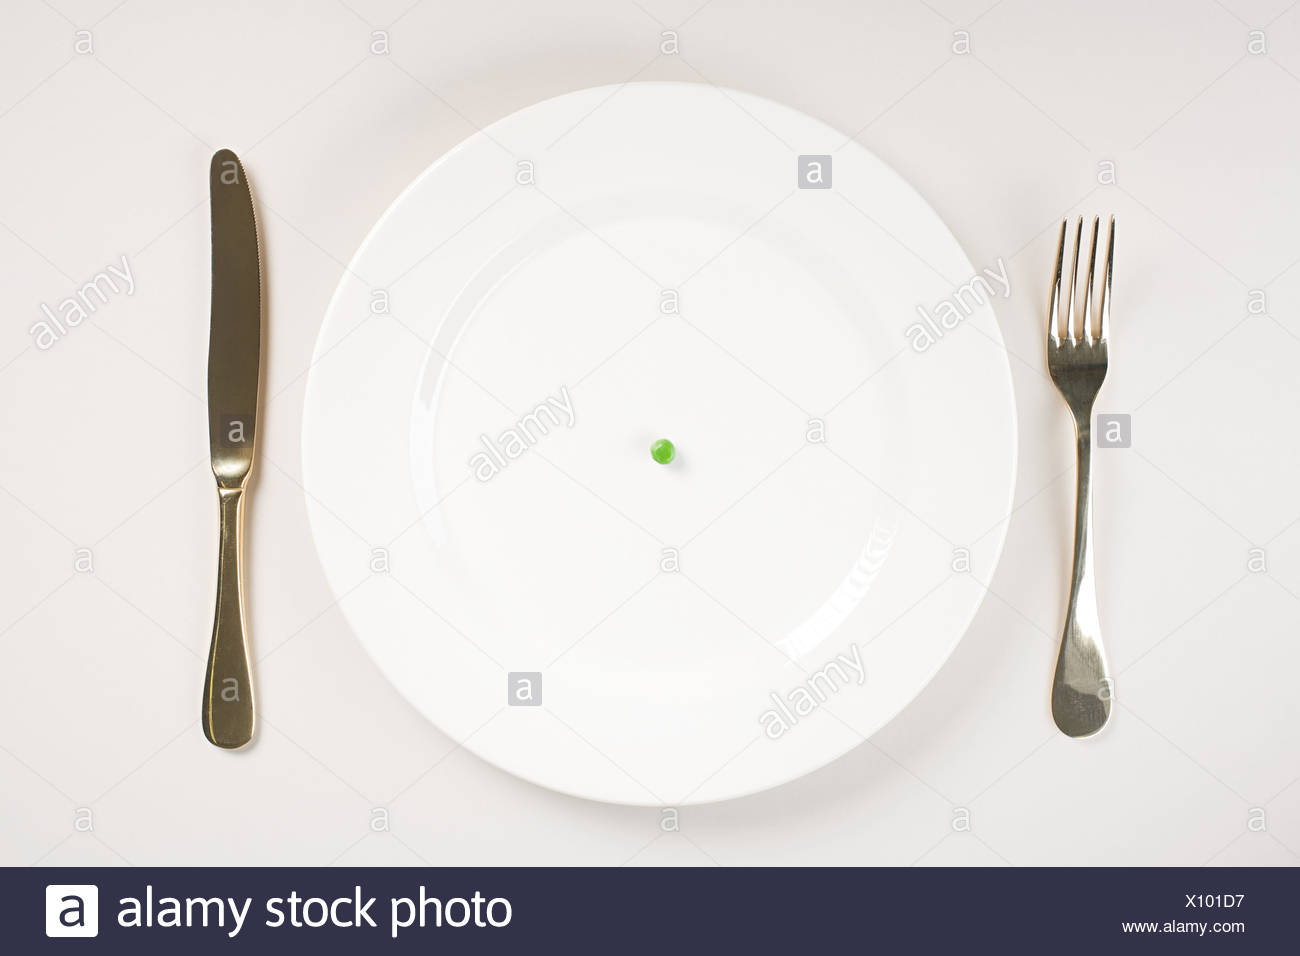 A pea on a plate - Stock Image